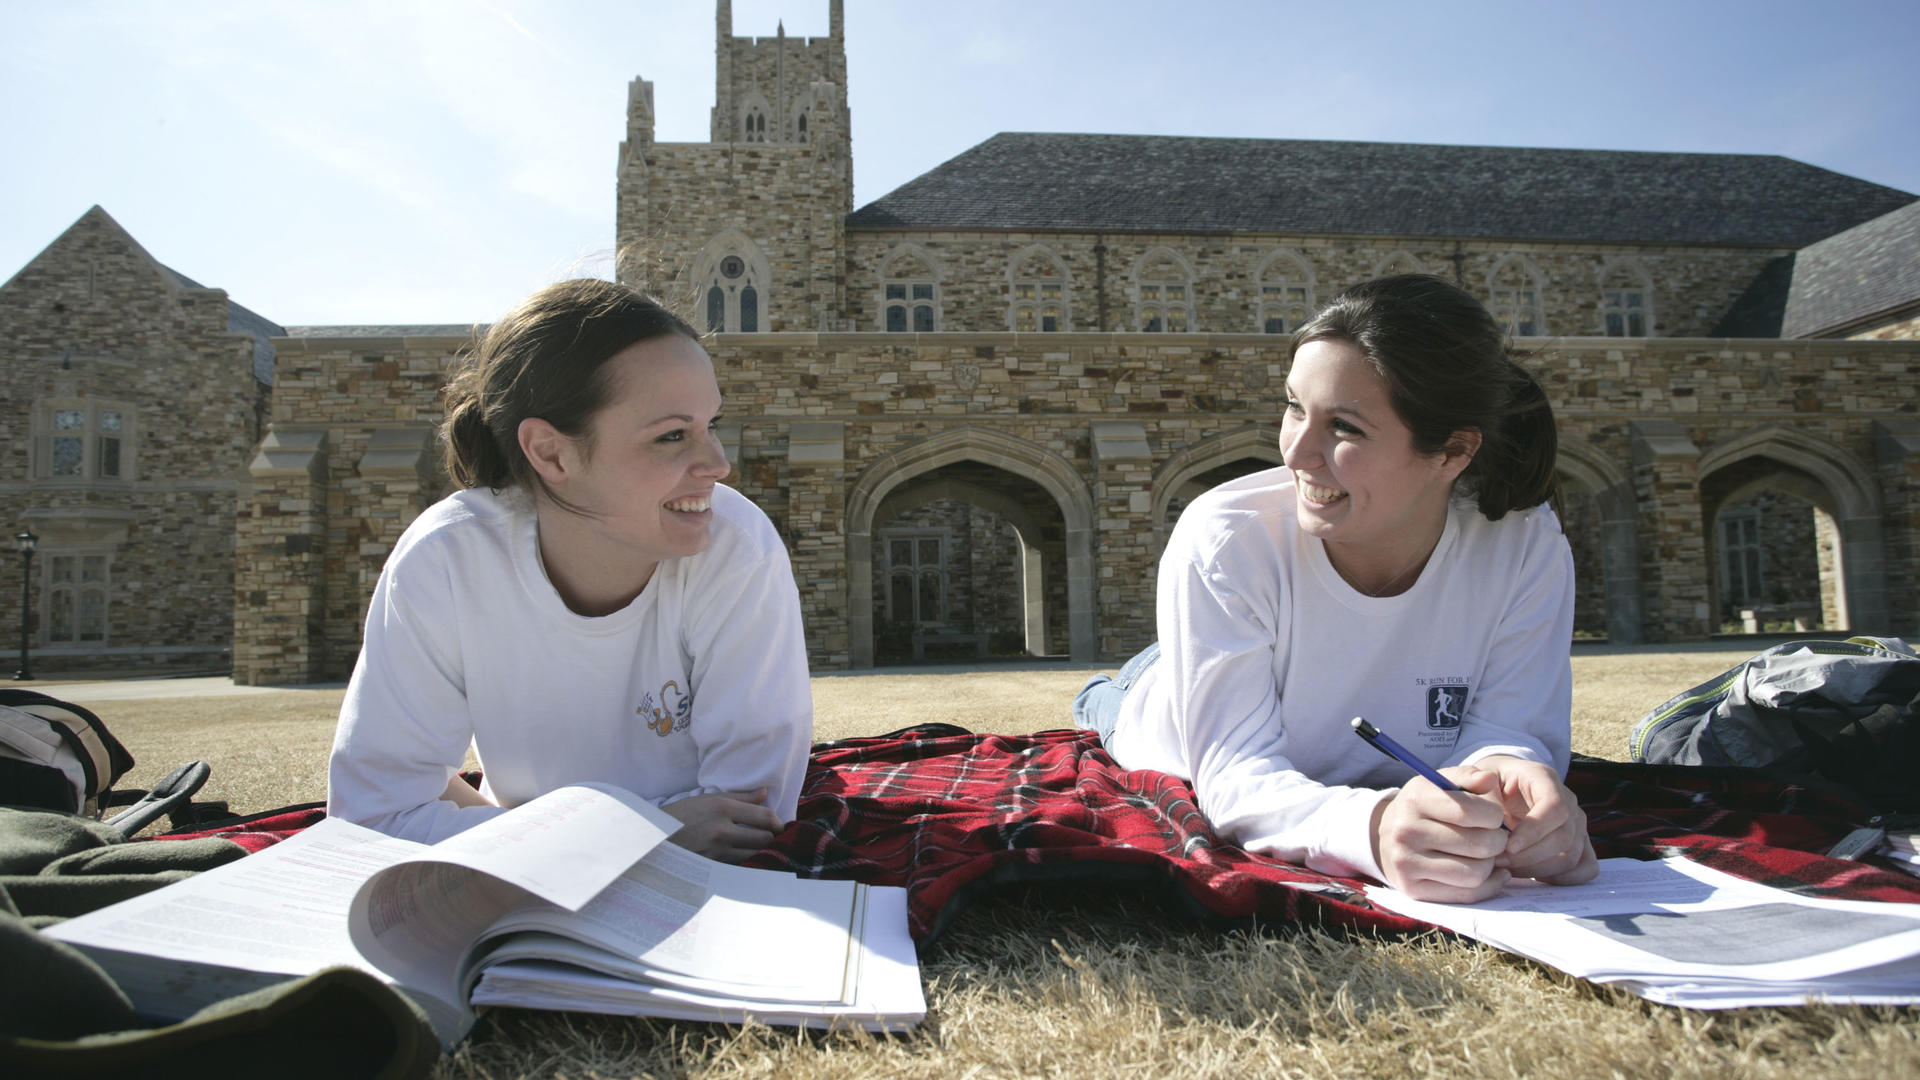 Students studying on the lawn